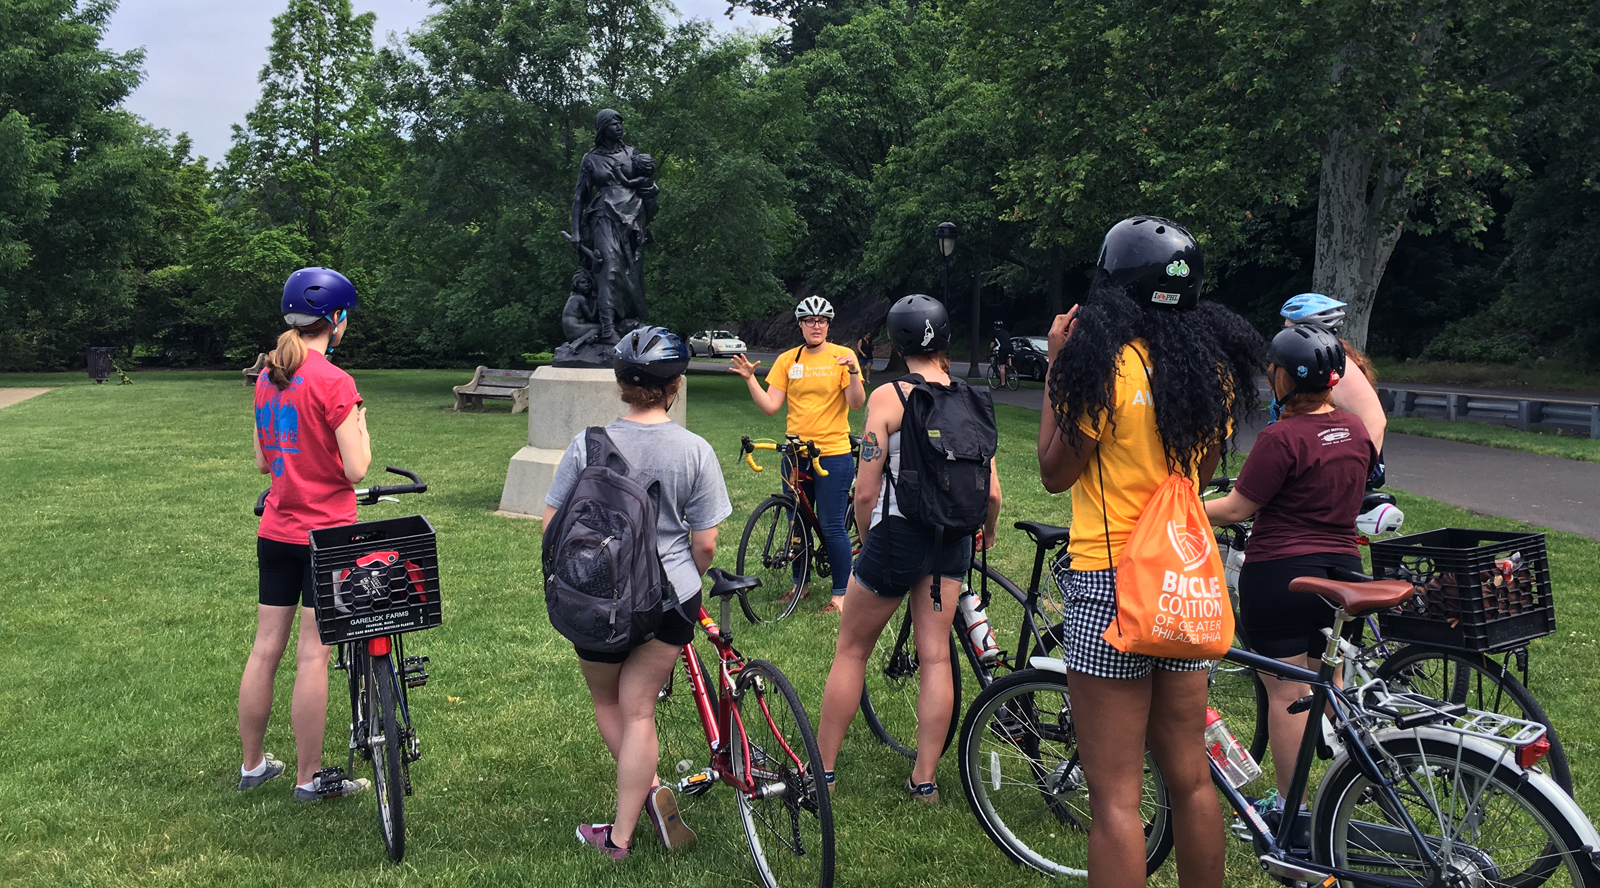 A public art Bike Tour led by the Association for Public Art stops at John J. Boyle's Stone Age in America